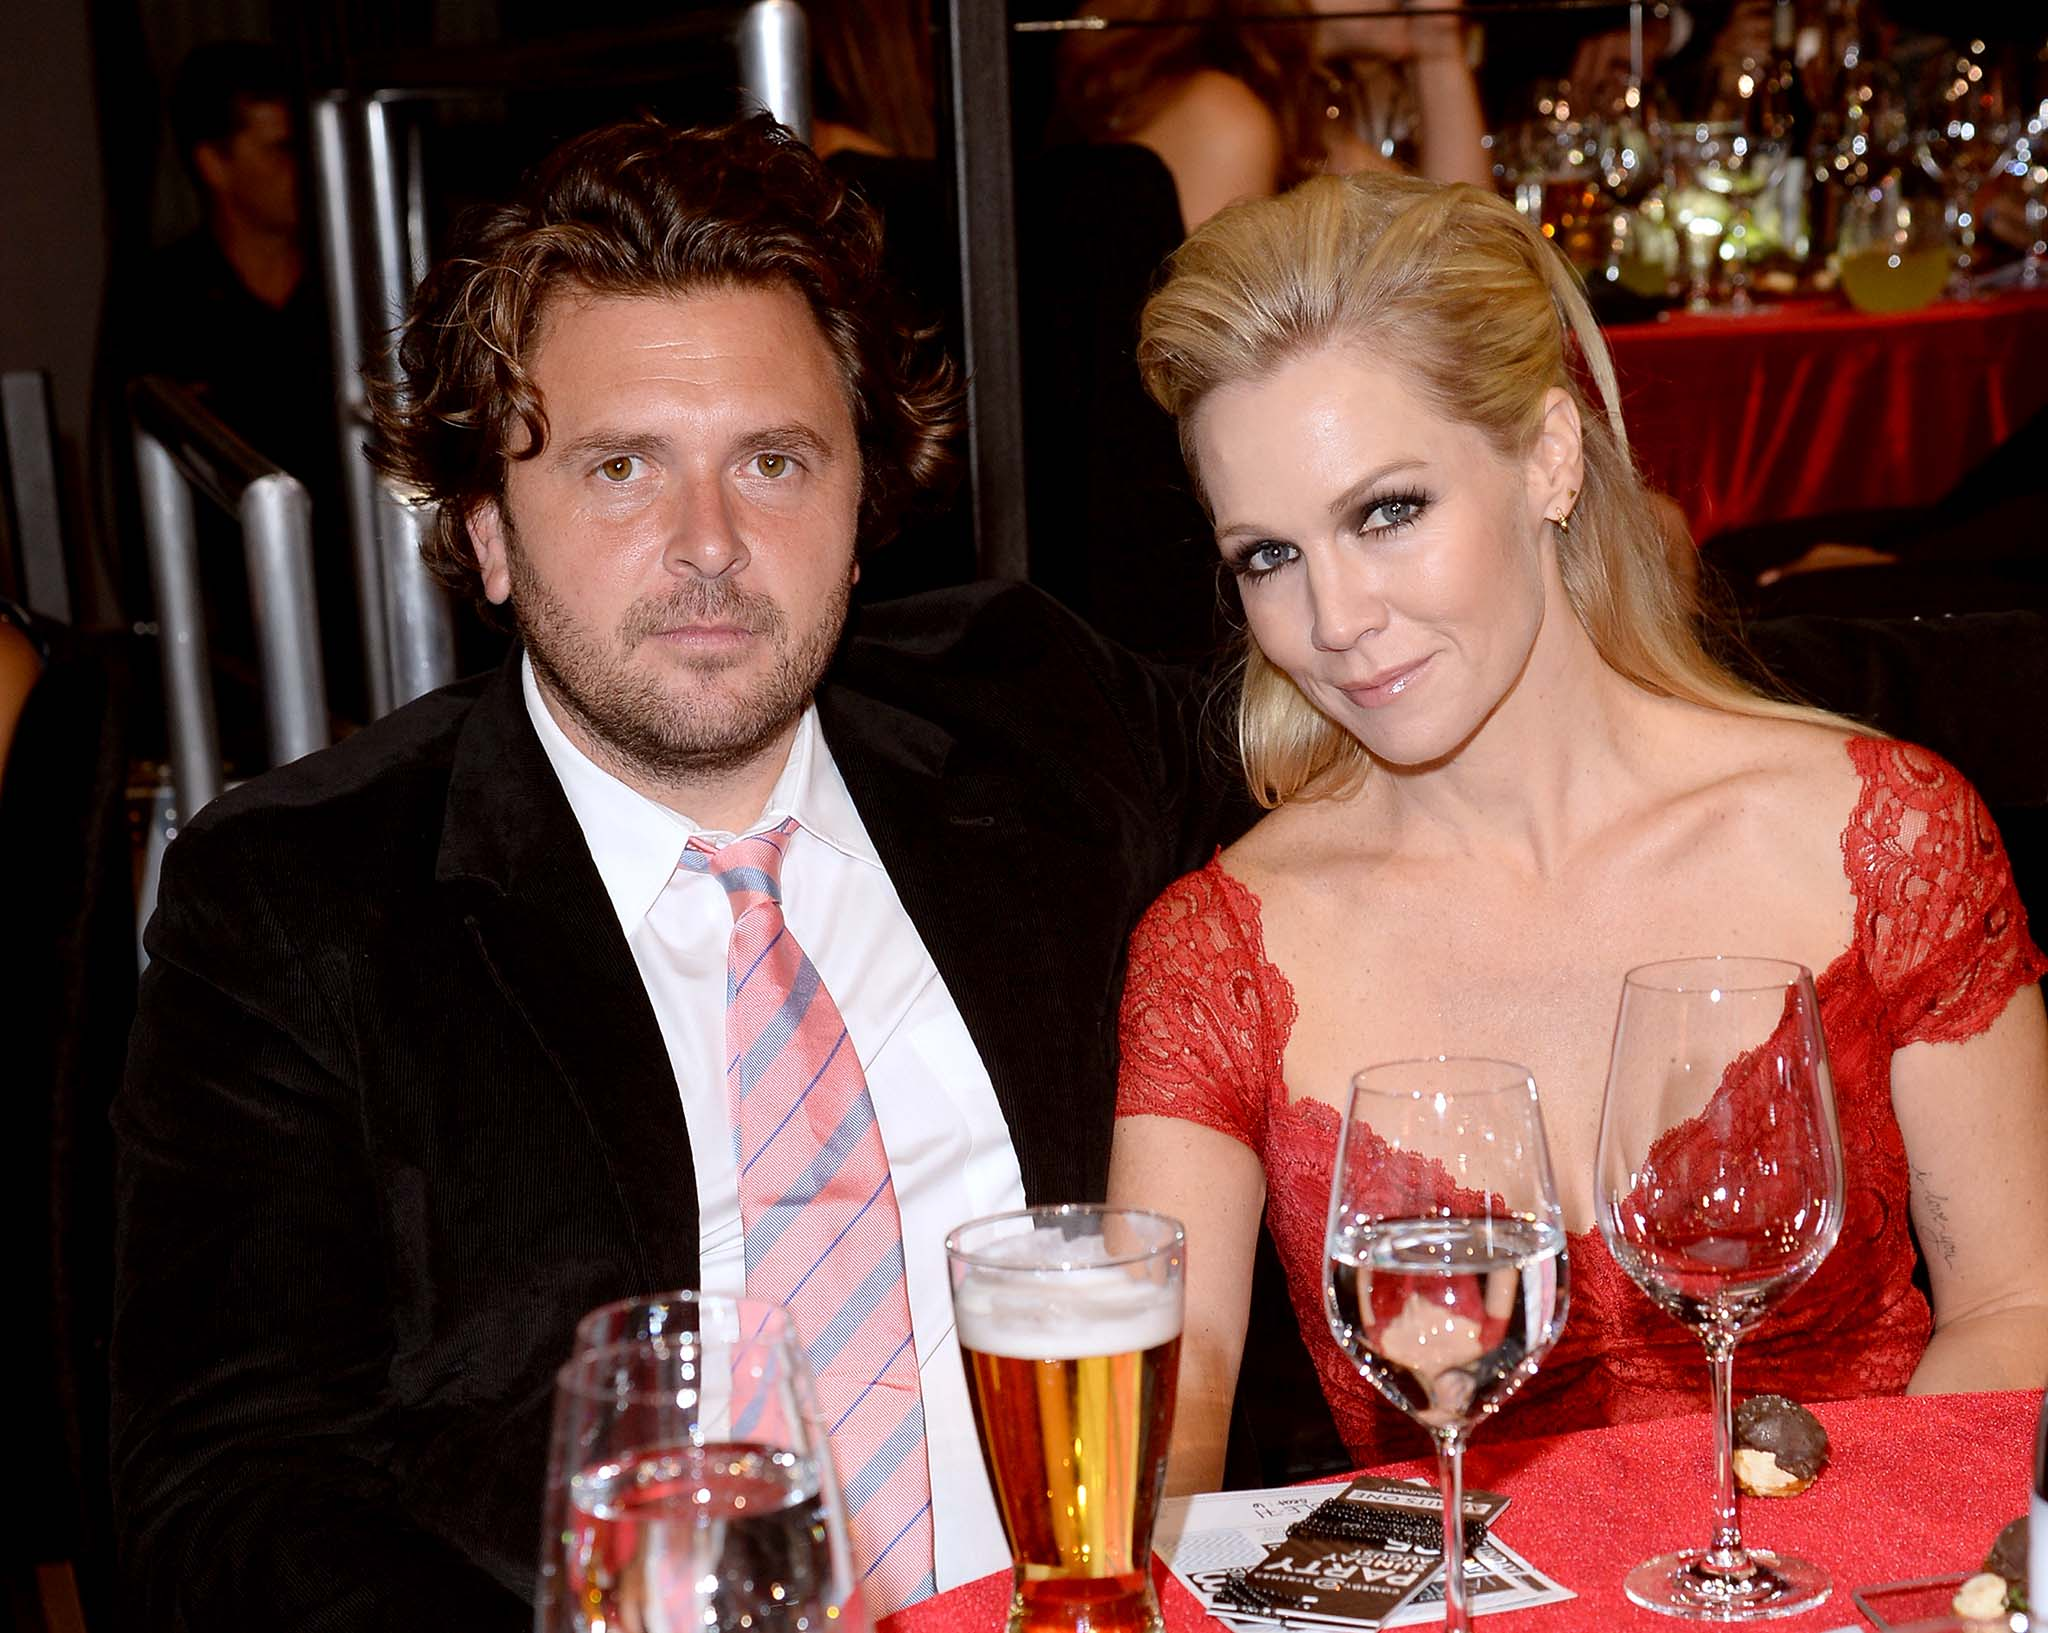 Michael Shimbo and Jennie Garth (Getty Images)